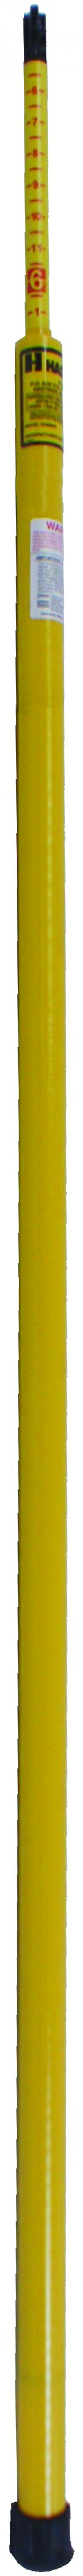 Hastings 30' Extendable Measuring Stick